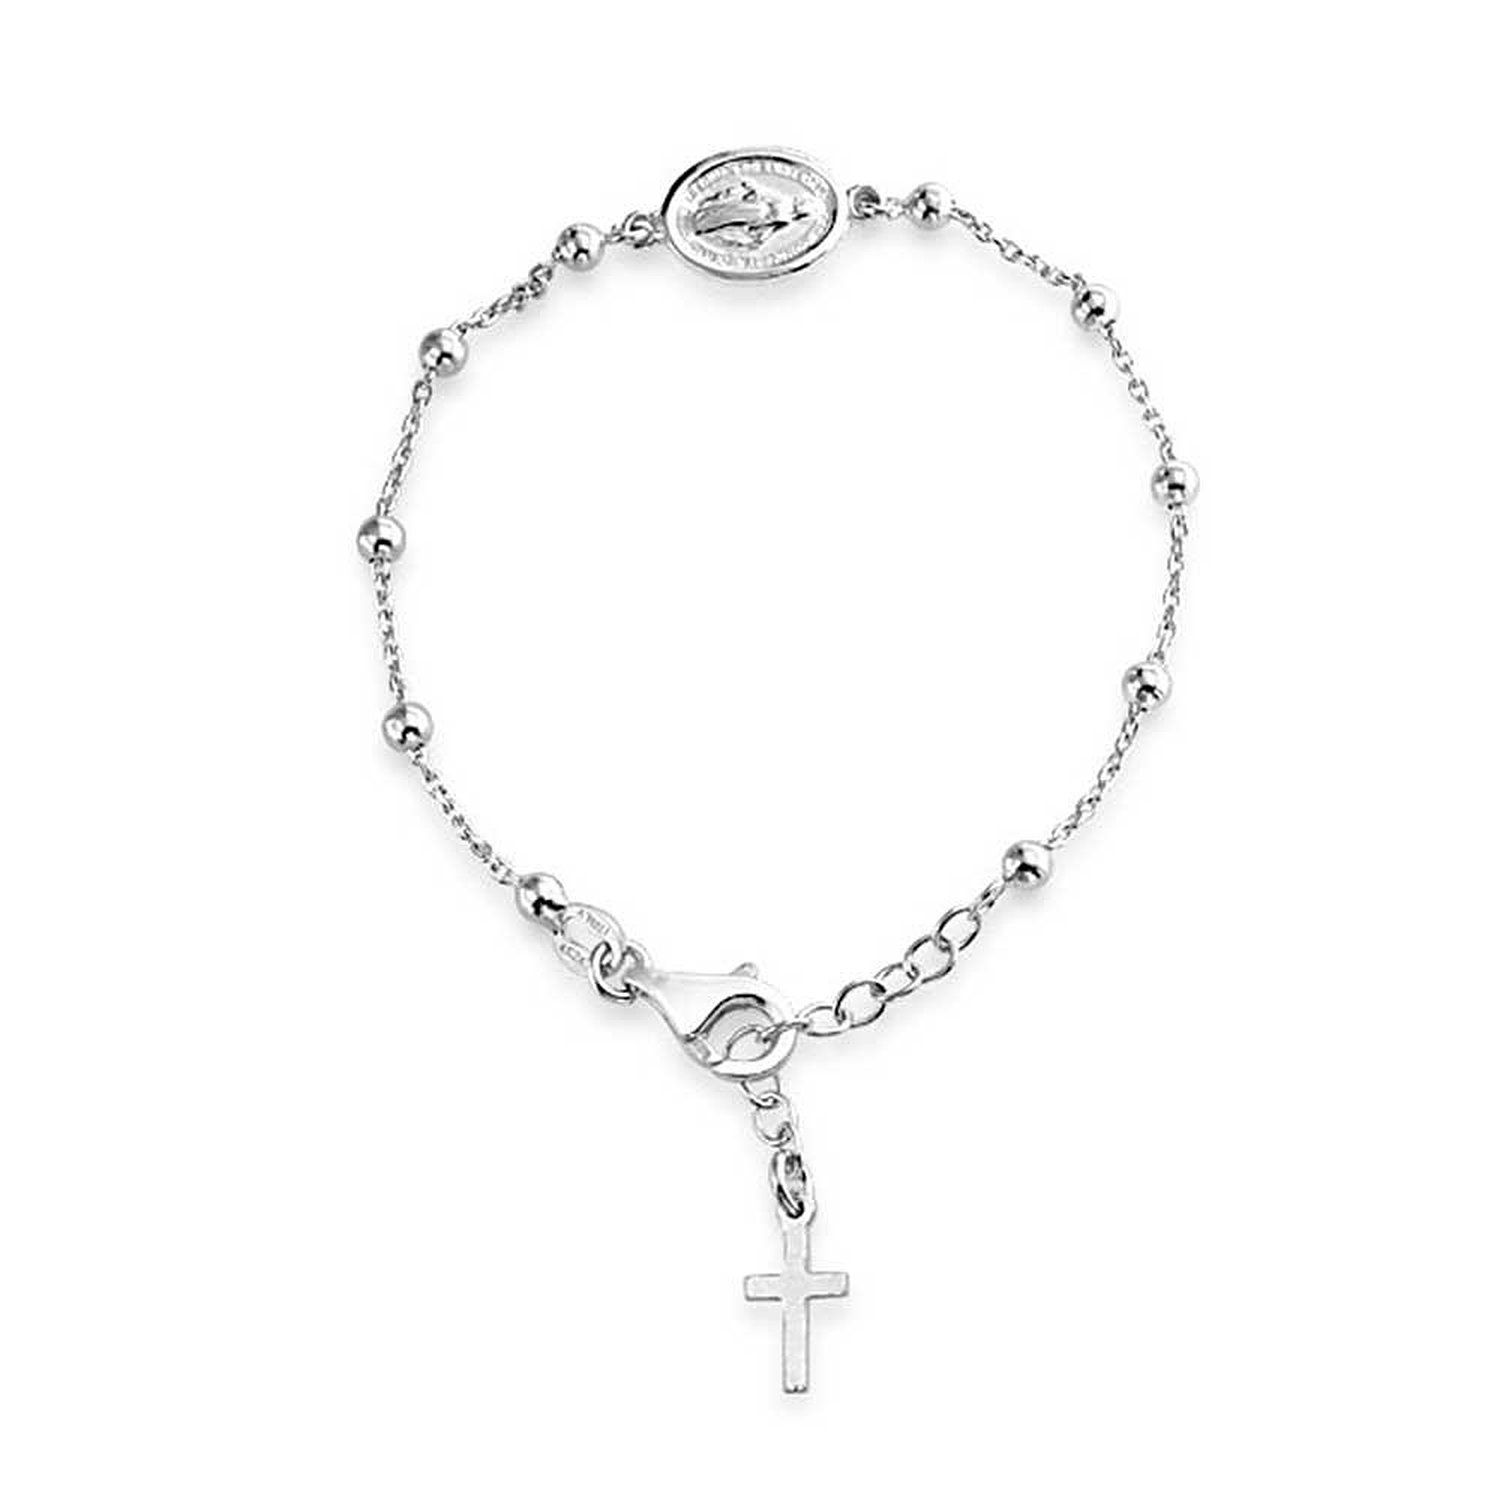 Bling jewelry sterling silver rosary beads mother mary medallion